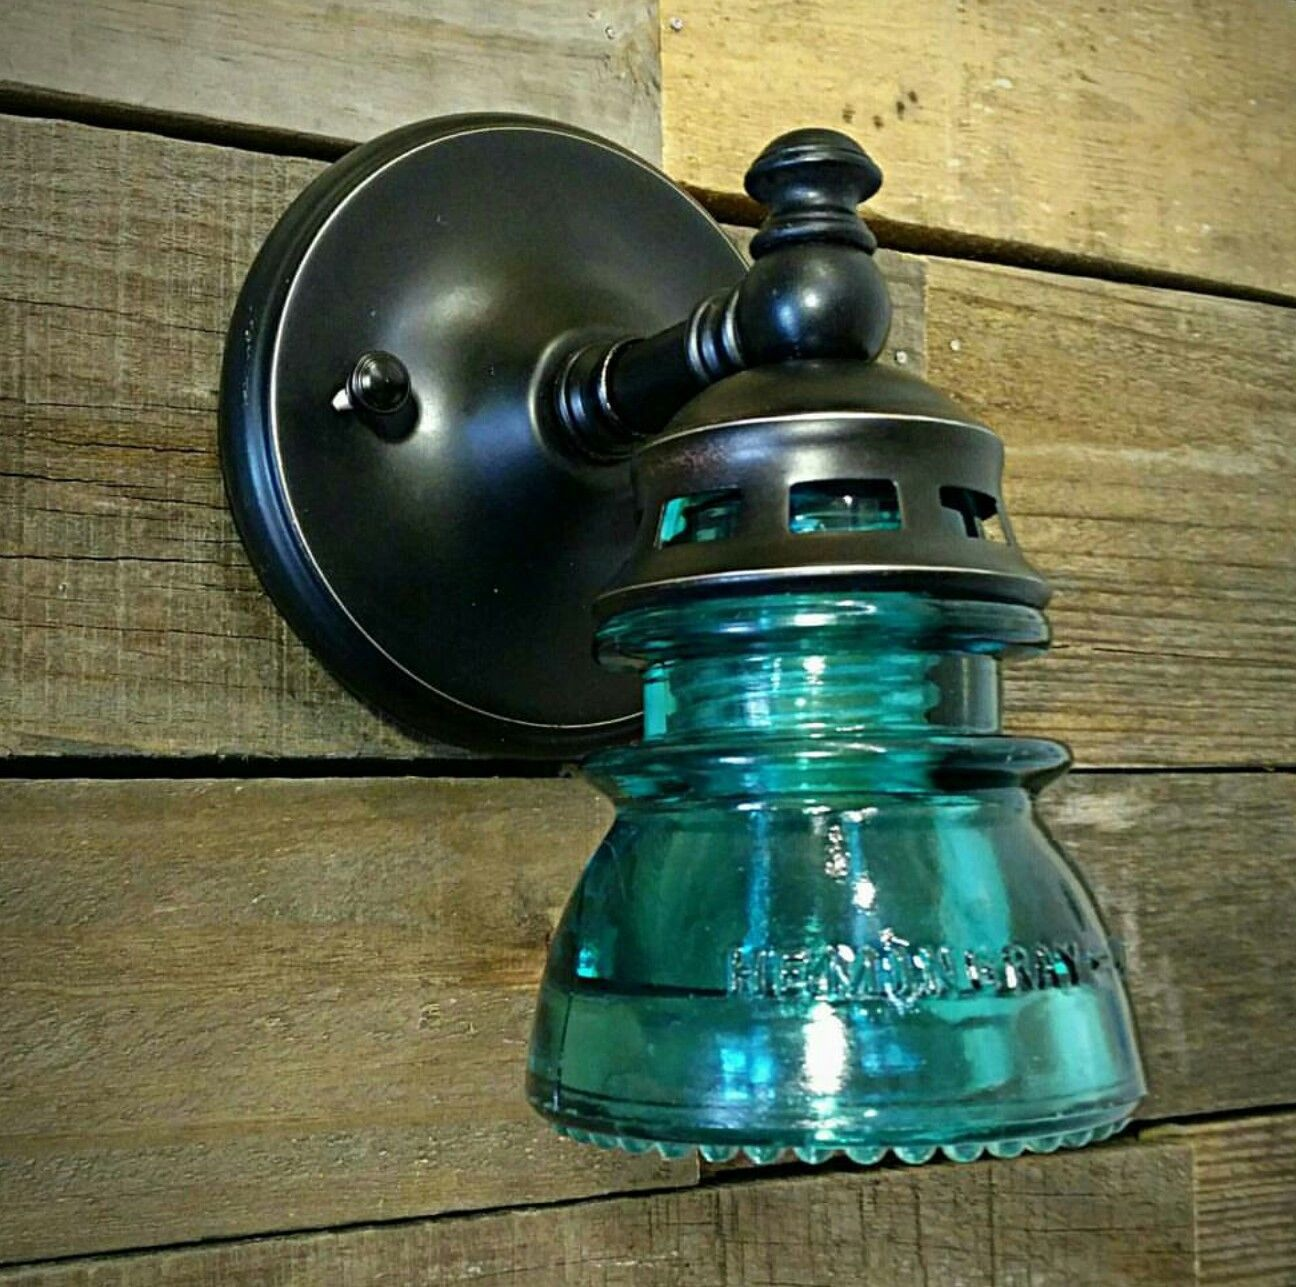 Httpsebayitmled glass sconce insulator lights vintage led glass sconce insulator lights vintage glass wall lighting bathroom lights ebay aloadofball